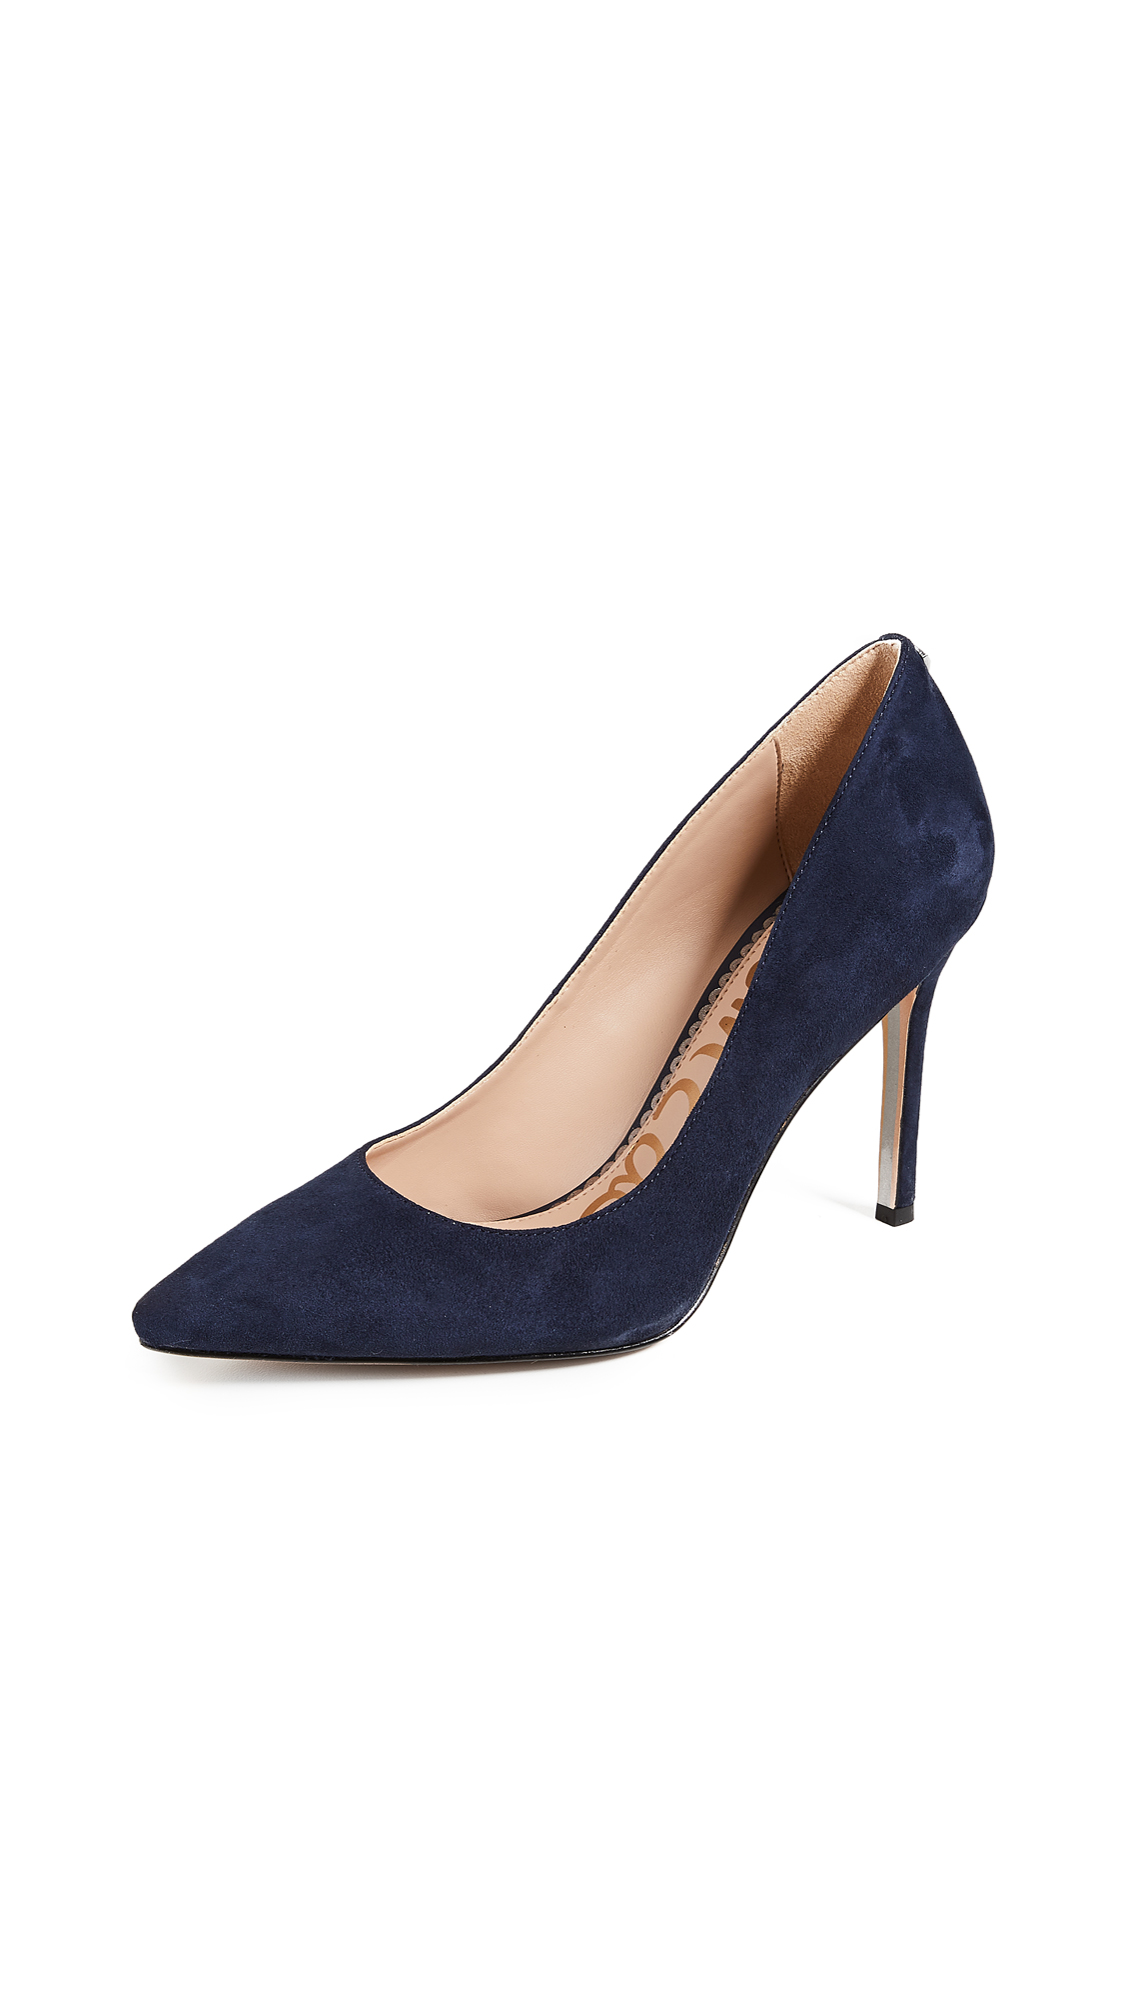 Sam Edelman Hazel Pumps